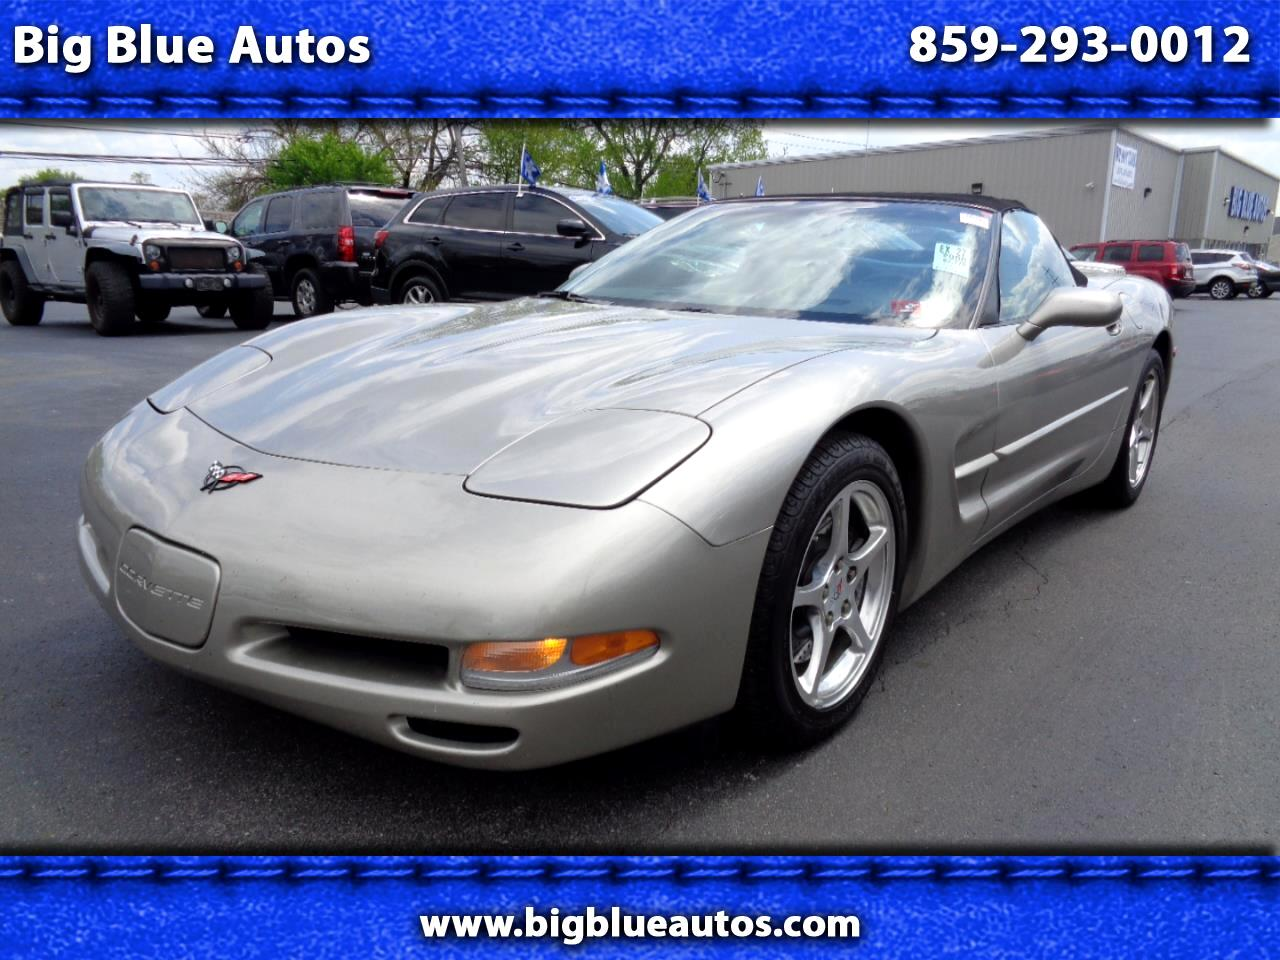 Chevrolet Corvette 2dr Convertible 2000